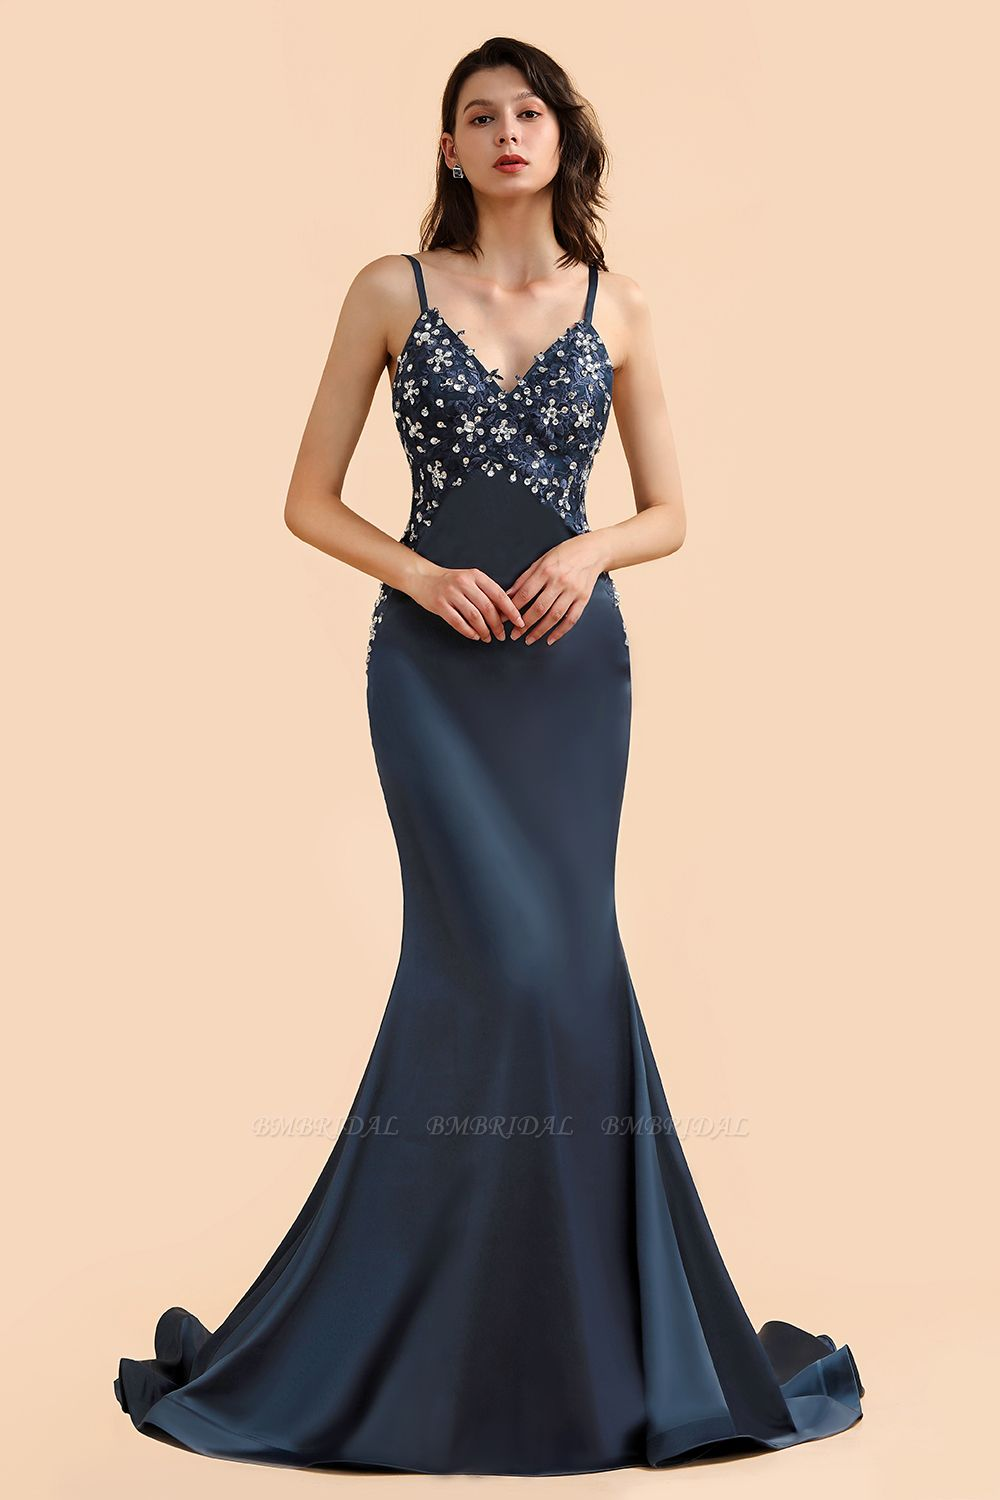 BMbridal Affordable Spaghetti Straps V-Neck Prom Dresses Sleeveless Appliques Beadings Party Dresses Online